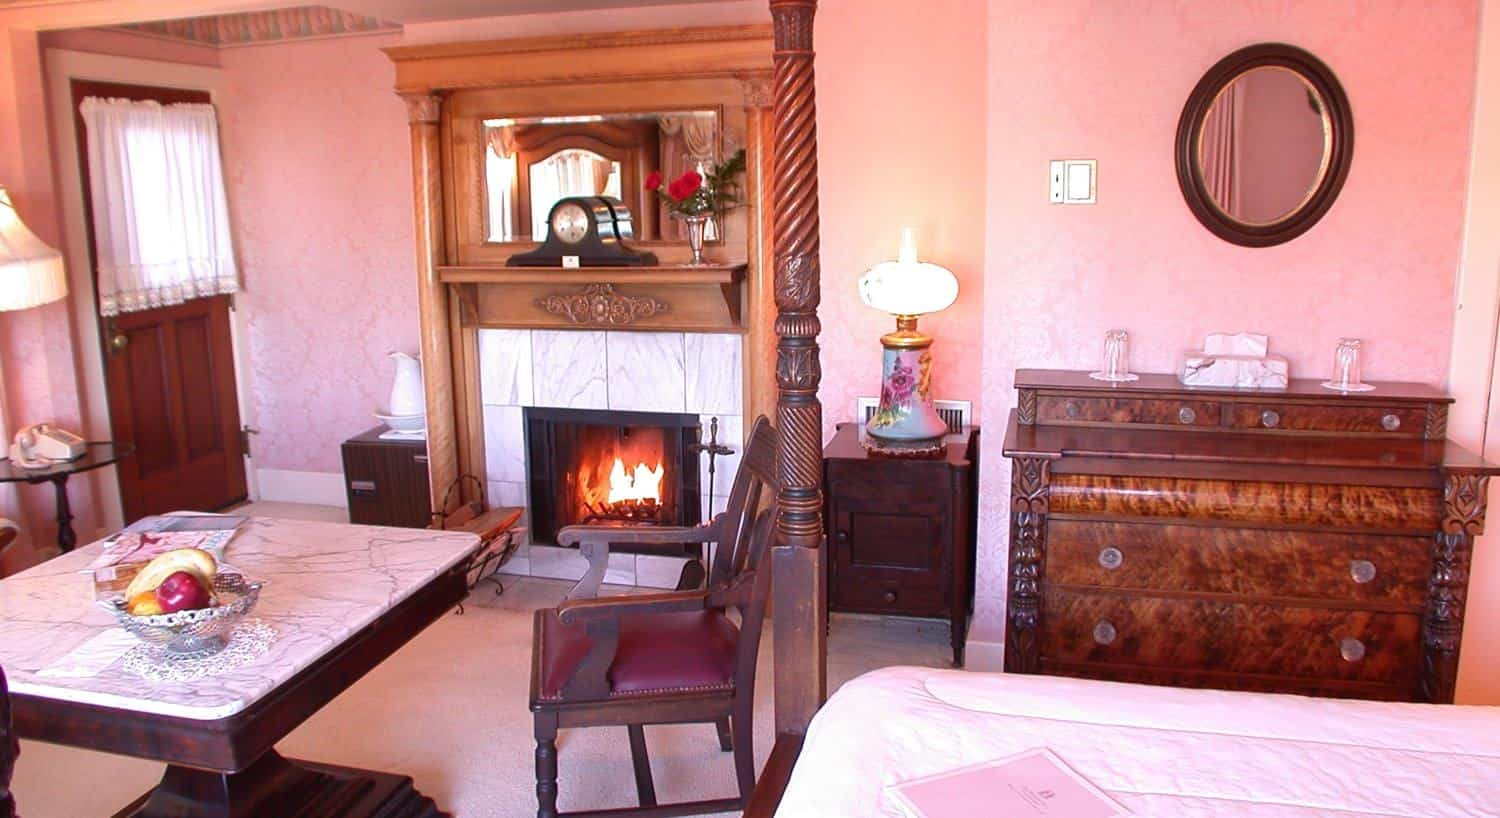 Empire guest room with pink walls, fireplace, marble topped table with chairs and dresser